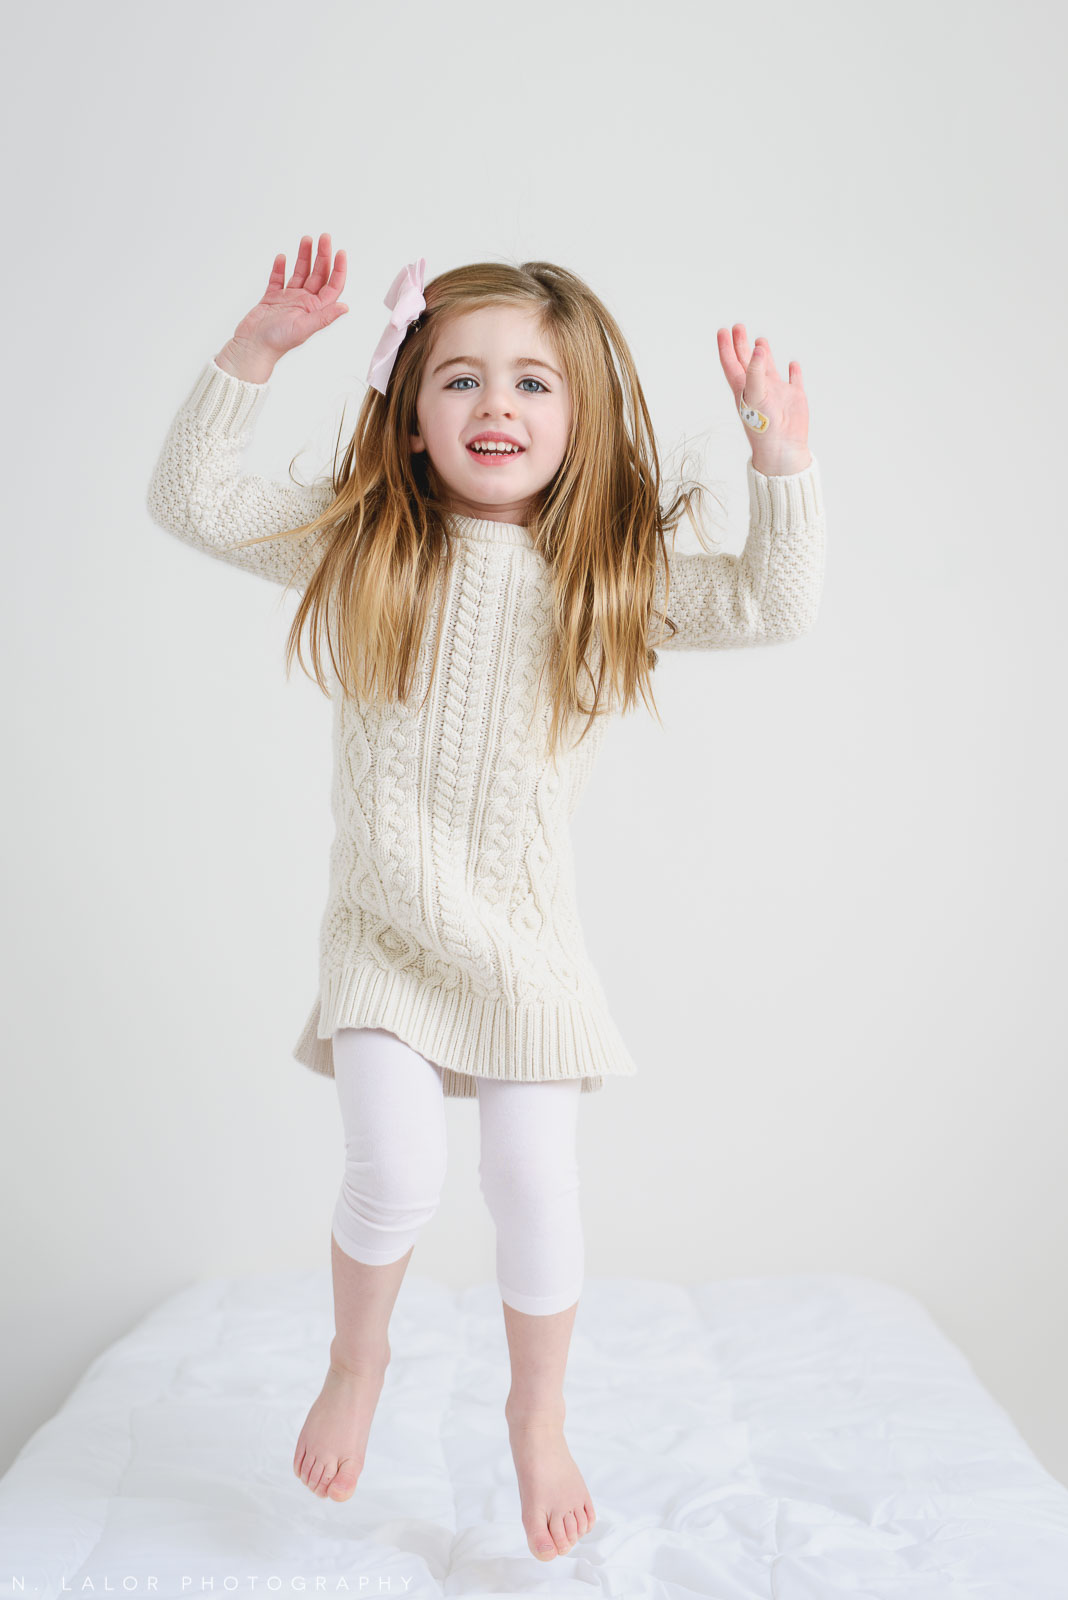 Jumping around. Studio portrait by N. Lalor Photography, Greenwich CT family photographer.